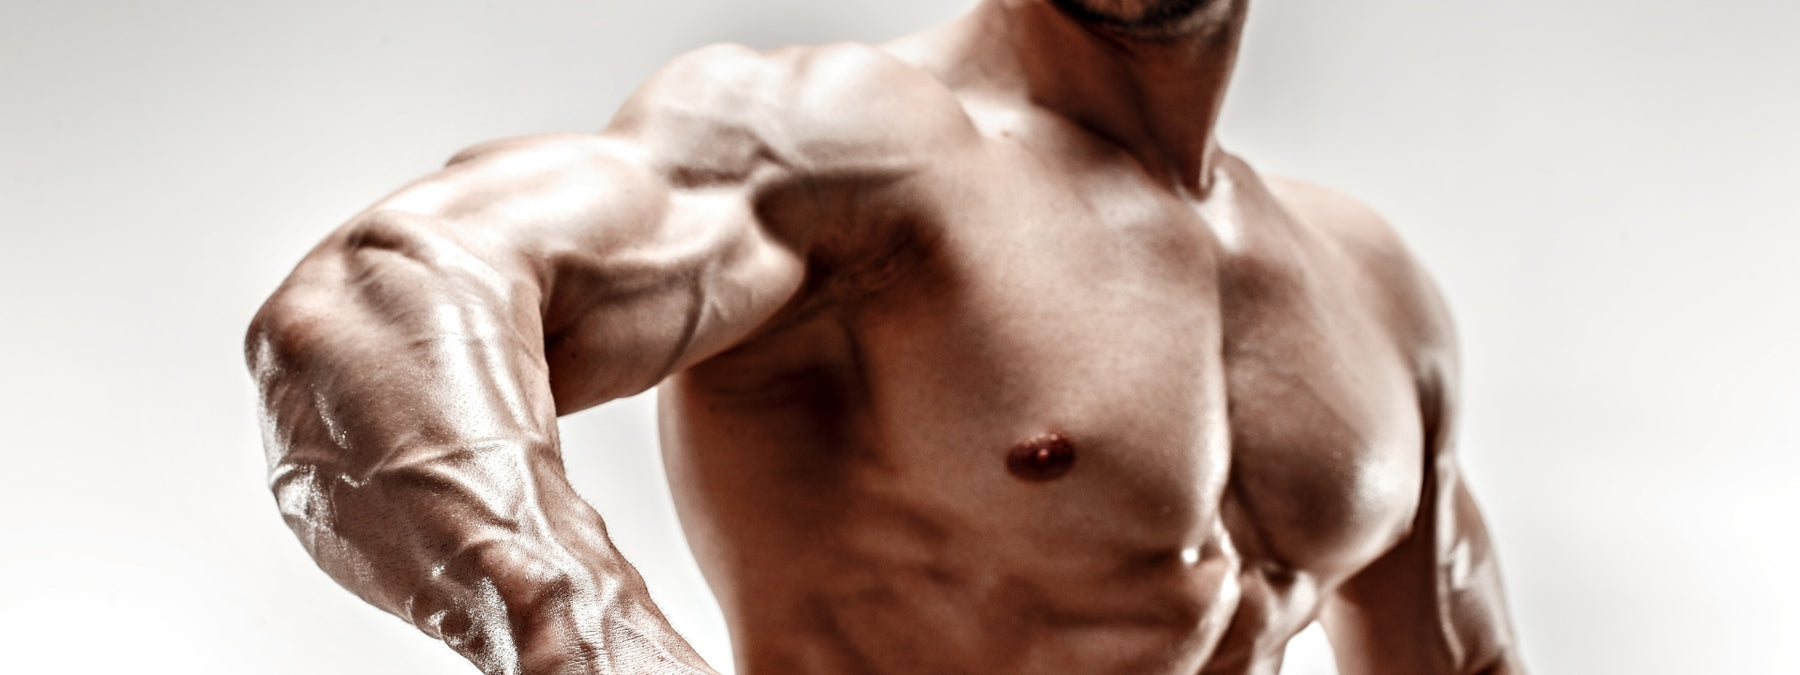 How to Structure Forearm Workouts For Size and Grip